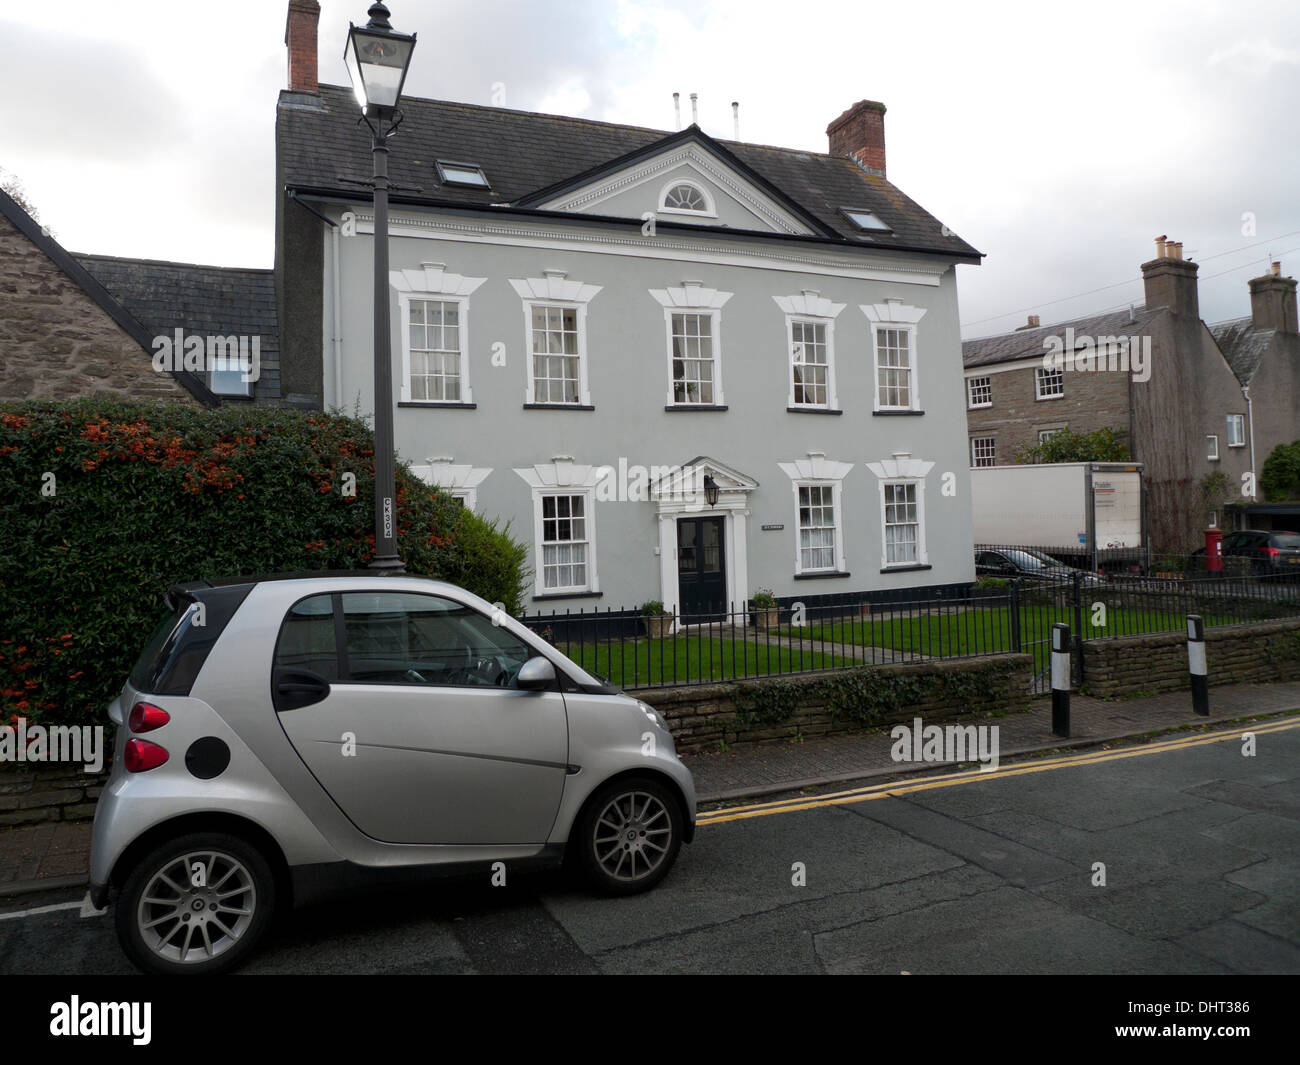 Silver Smart Car parked in front of Ivy Towers Grade II listed building in Crickhowell, Powys, Wales UK  KATHY DEWITT Stock Photo